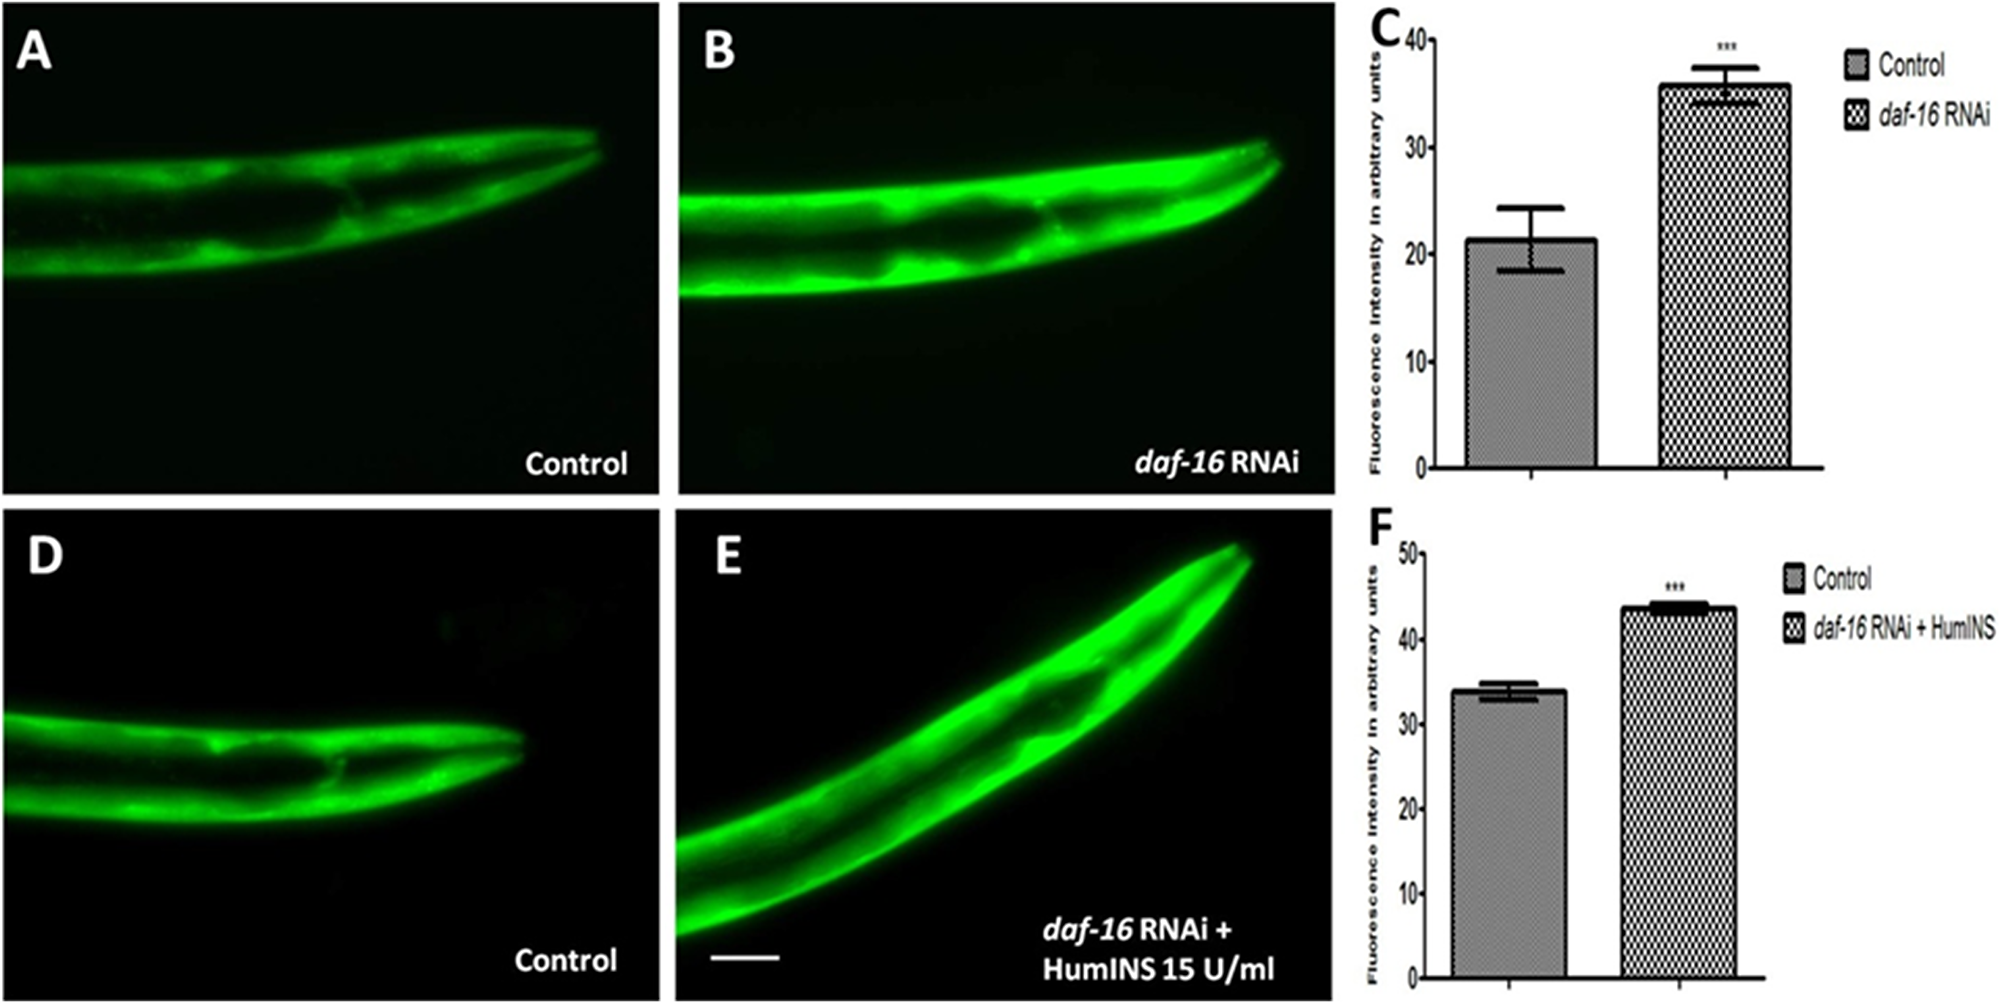 Protective action of HumINS against α-syn expression also involves FOXO transcriptional factor DAF-16 of the C. elegans ILS pathway.